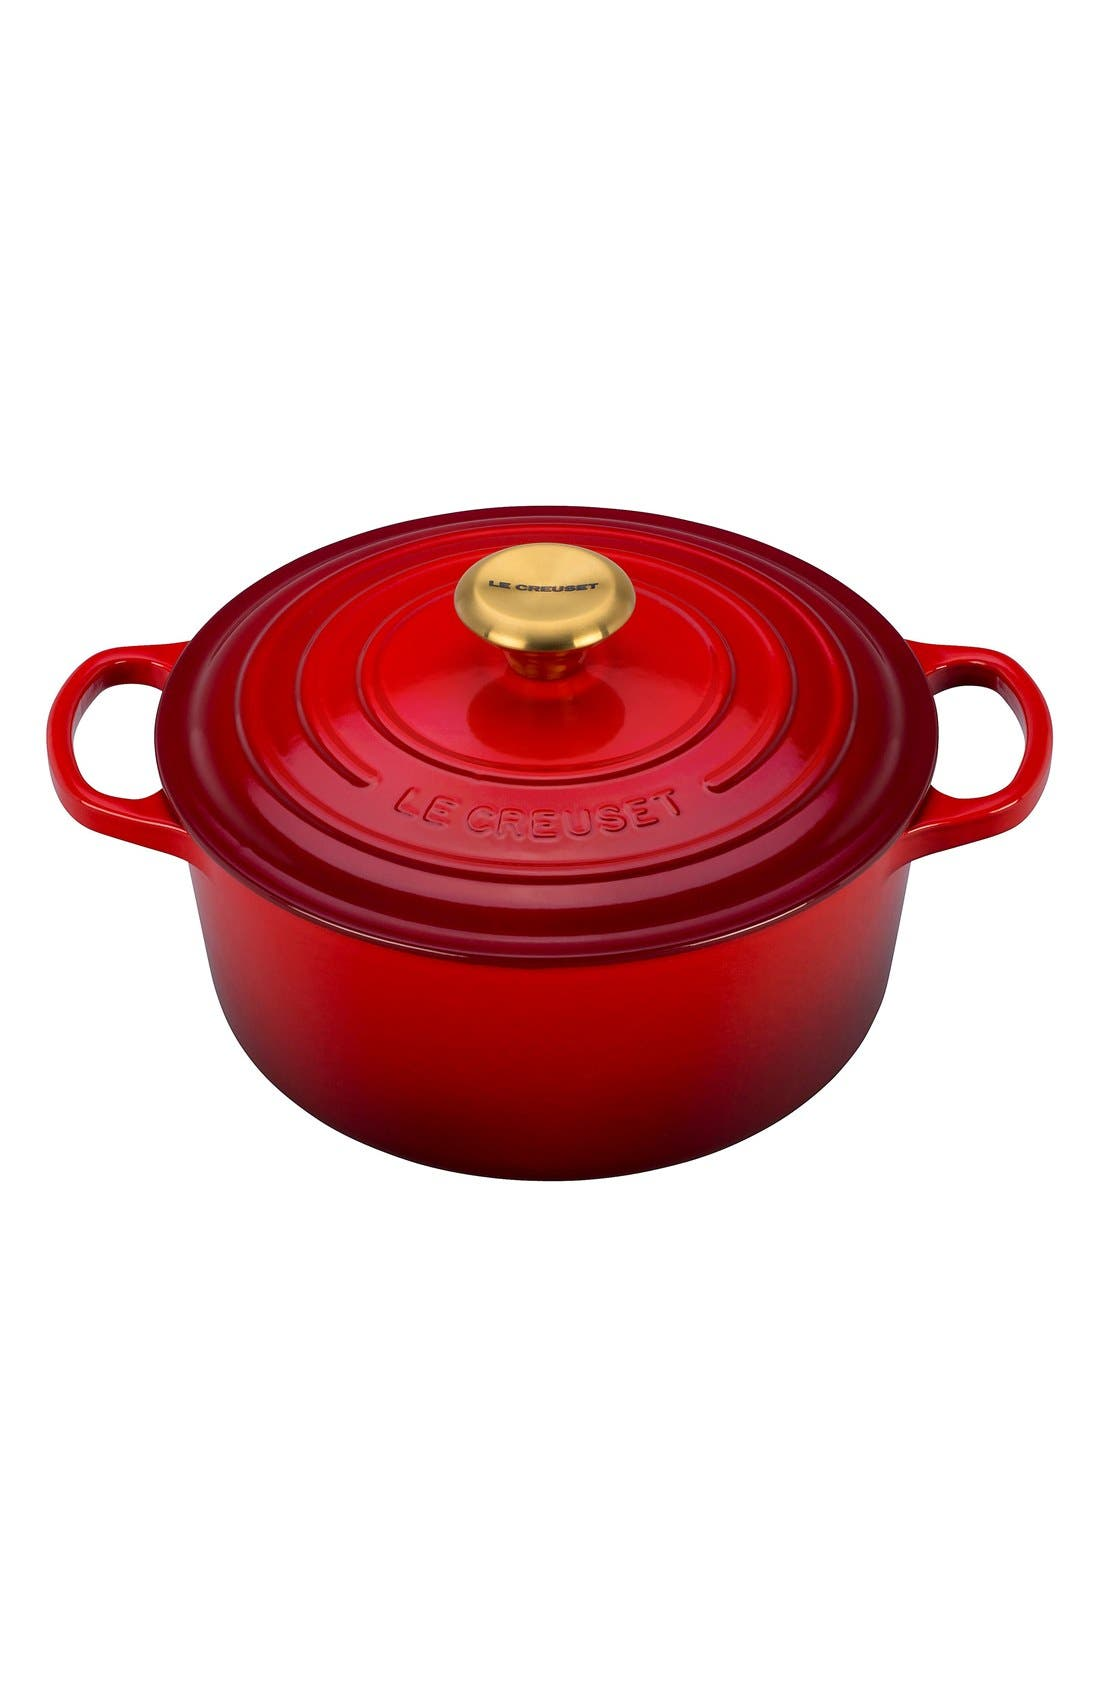 LE CREUSET Gold Knob Collection 4 1/2 Quart